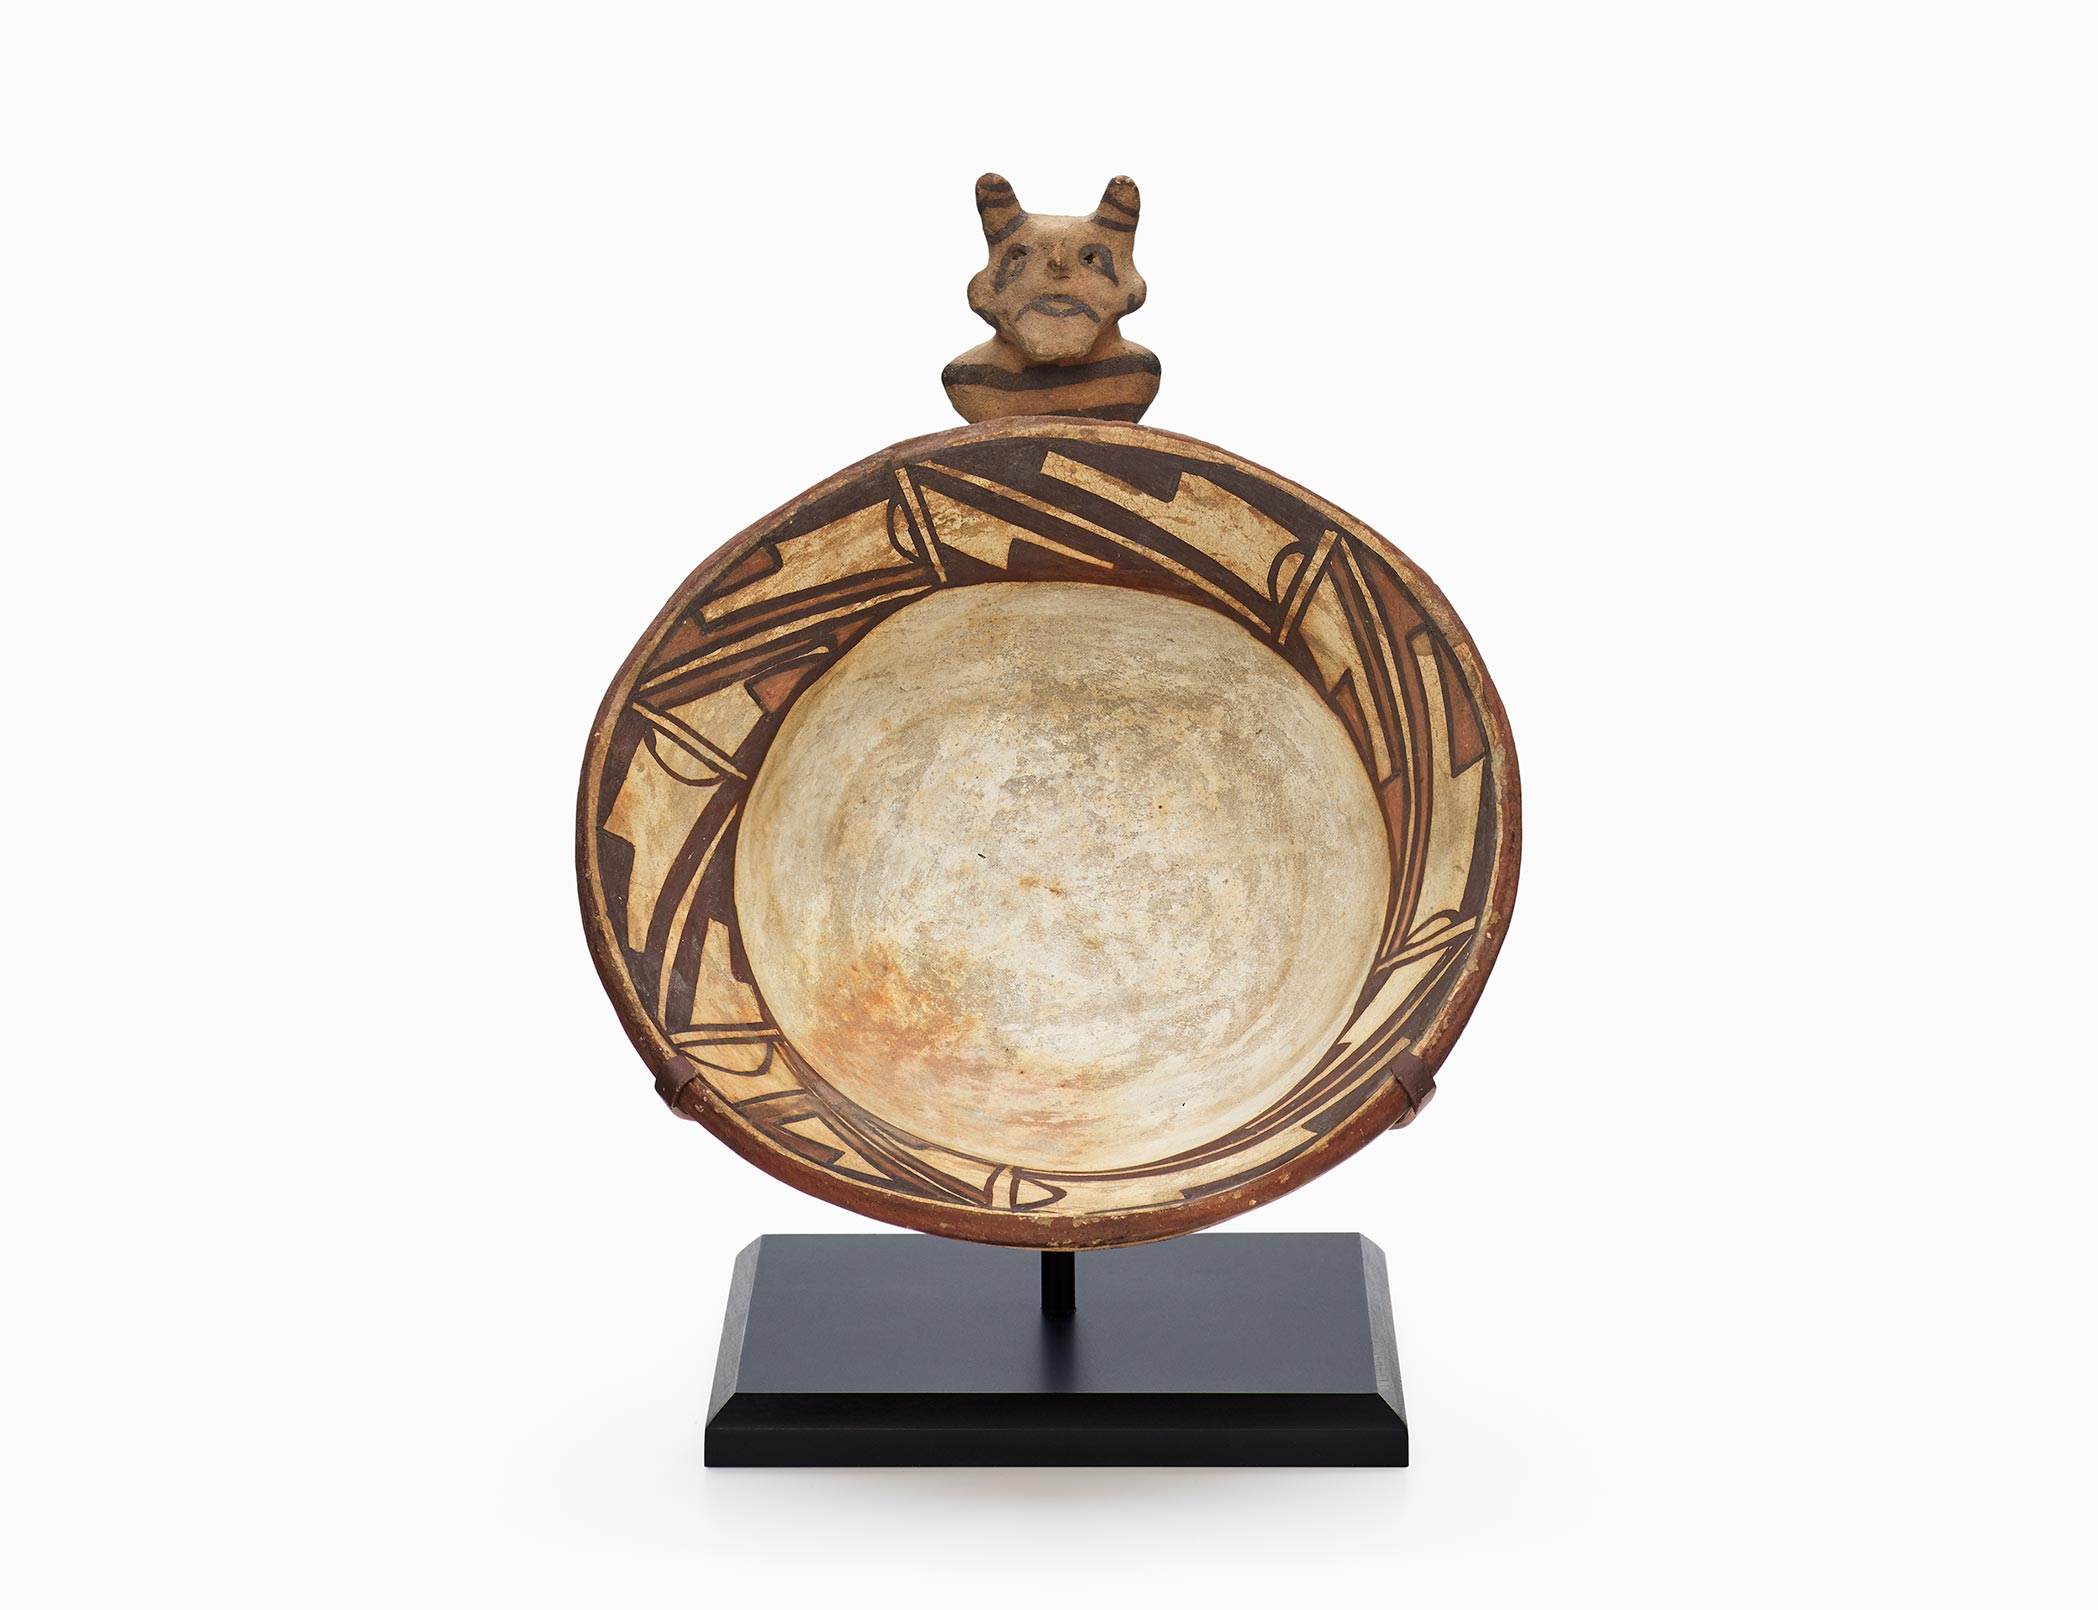 A Hopi bowl with a geometric design around the lip and a sculpted clown figure on the rim.